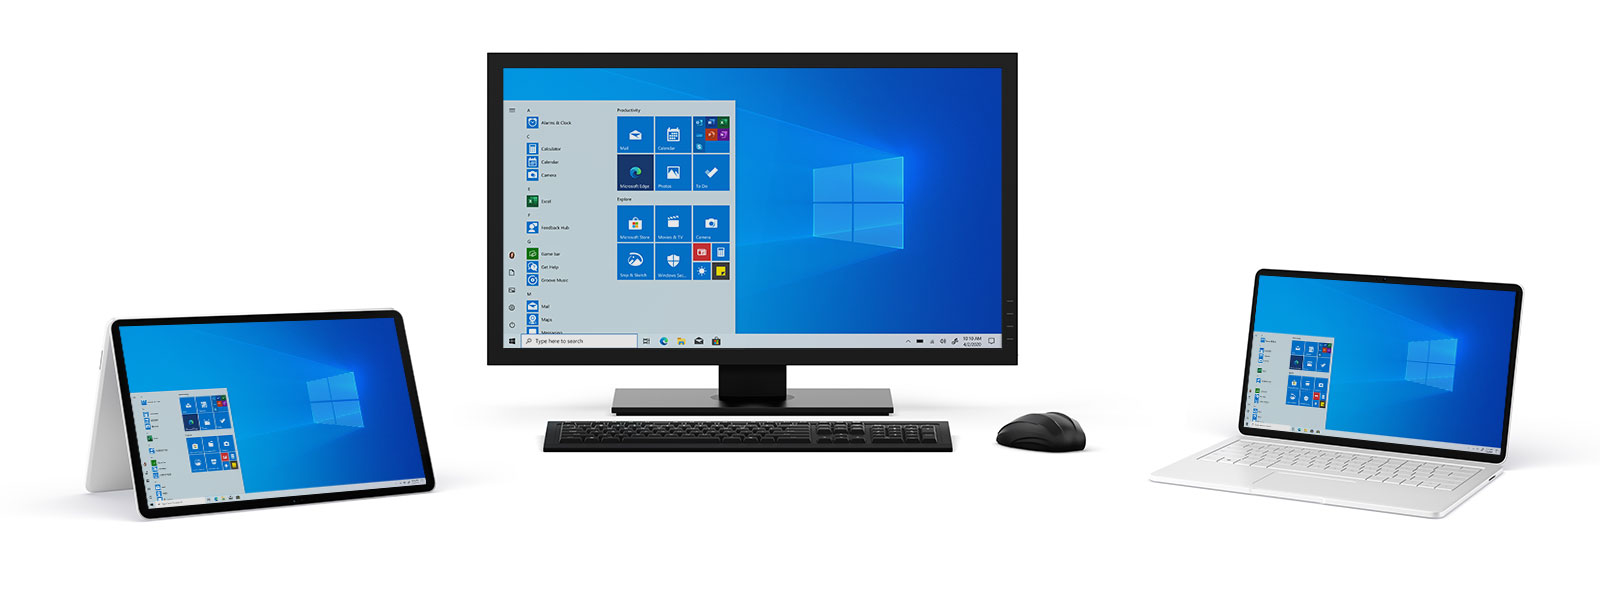 A collection of windows 10 devices